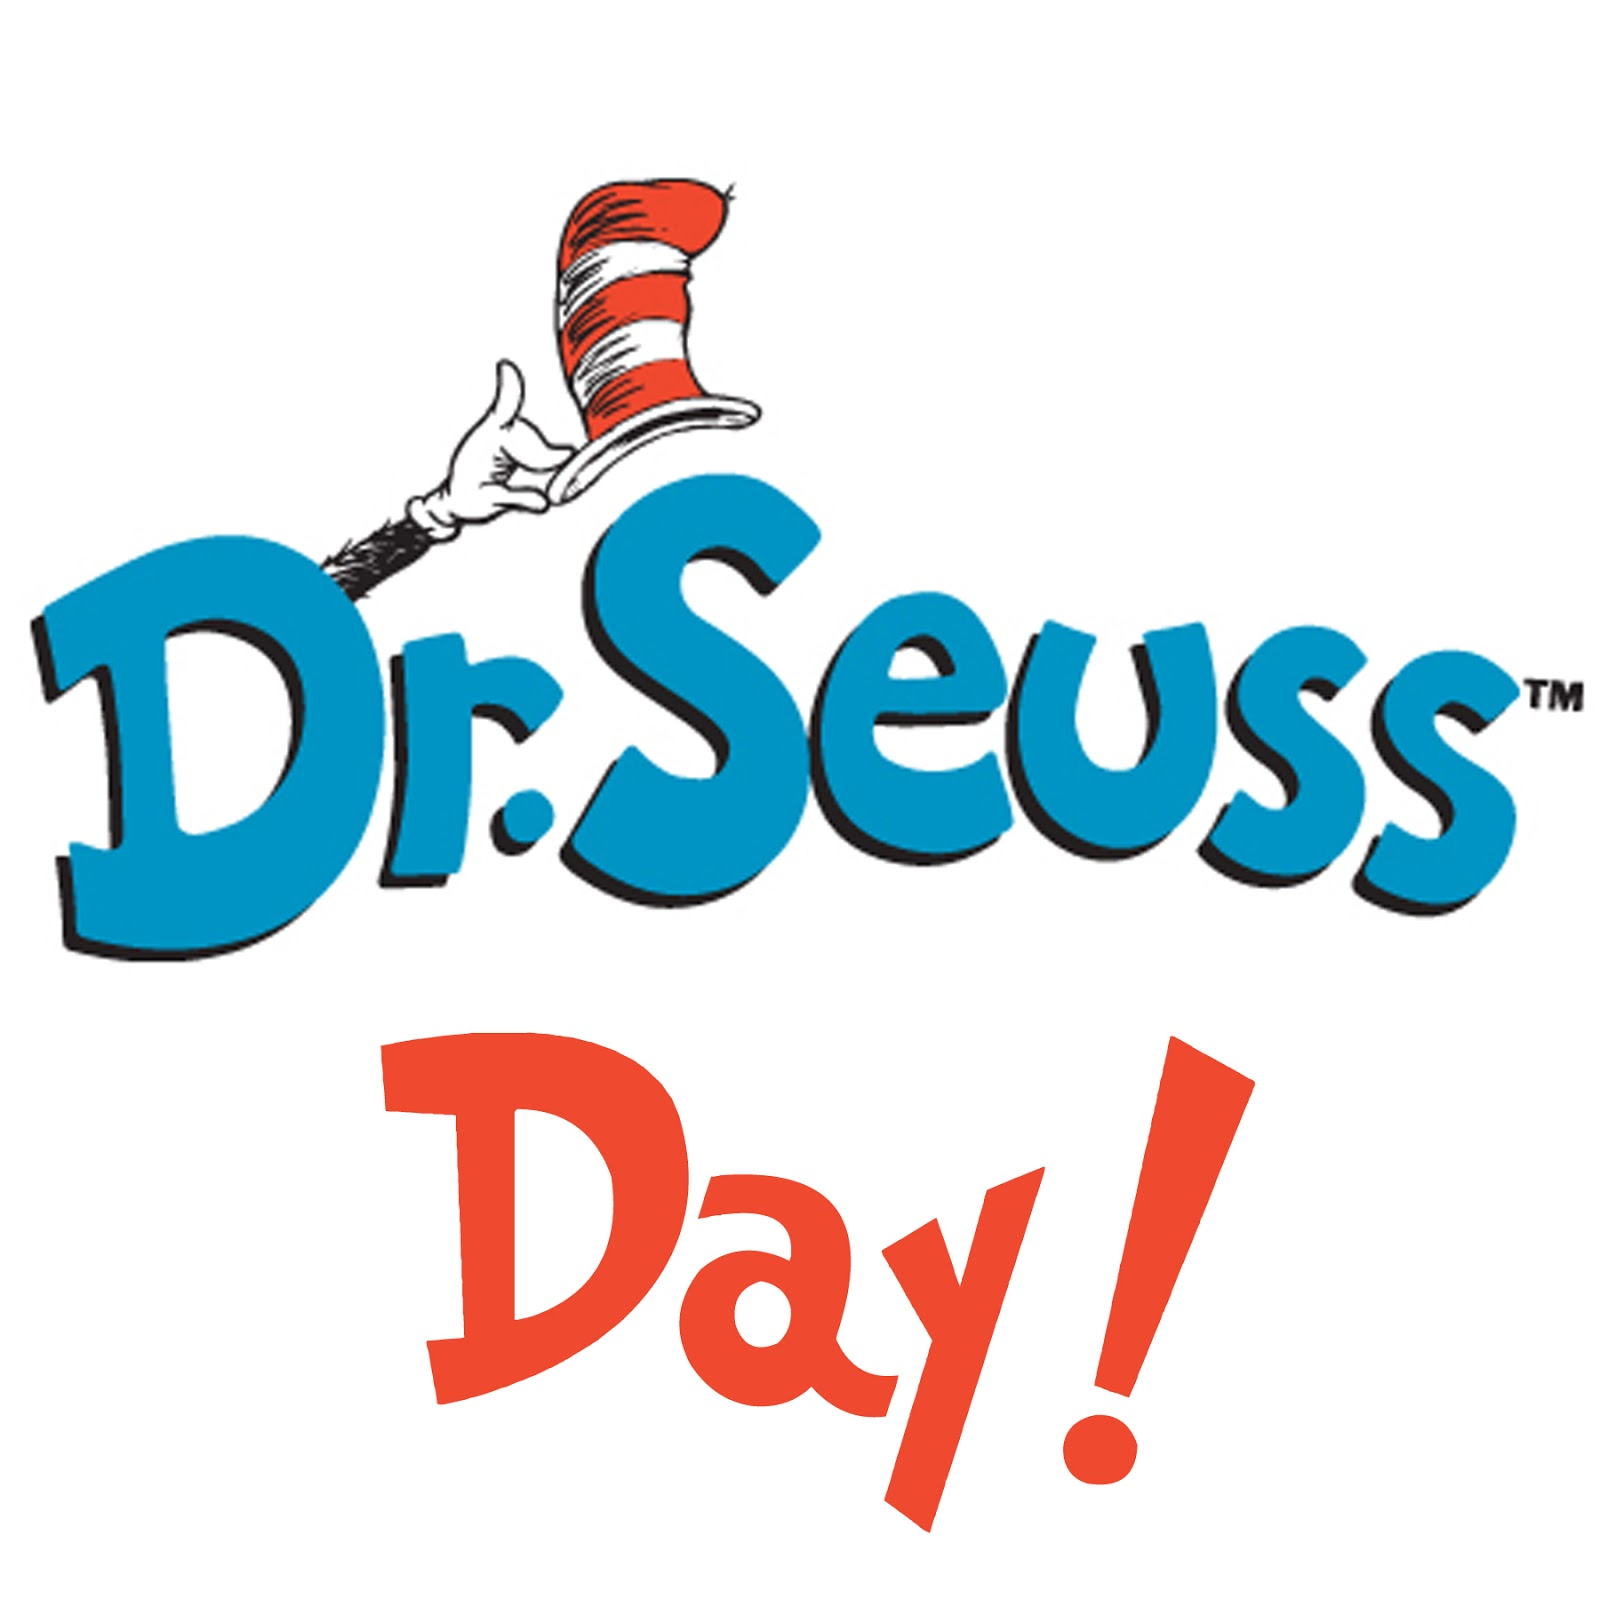 Dr Seuss Who Is He: Delicious Reads: Dr. Seuss Day